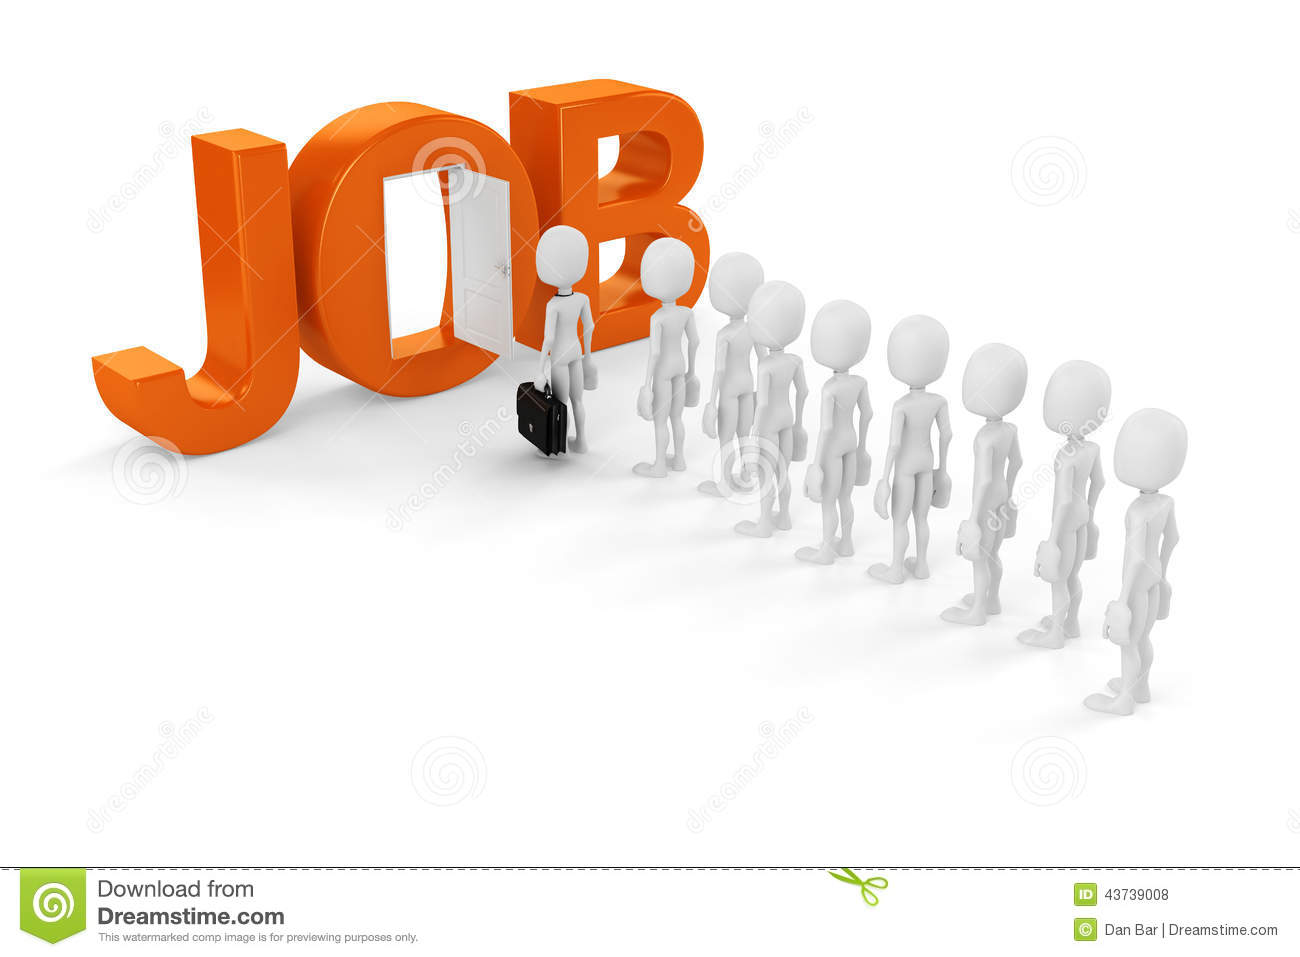 d man new job opportunity stock illustration image  3d man new job opportunity